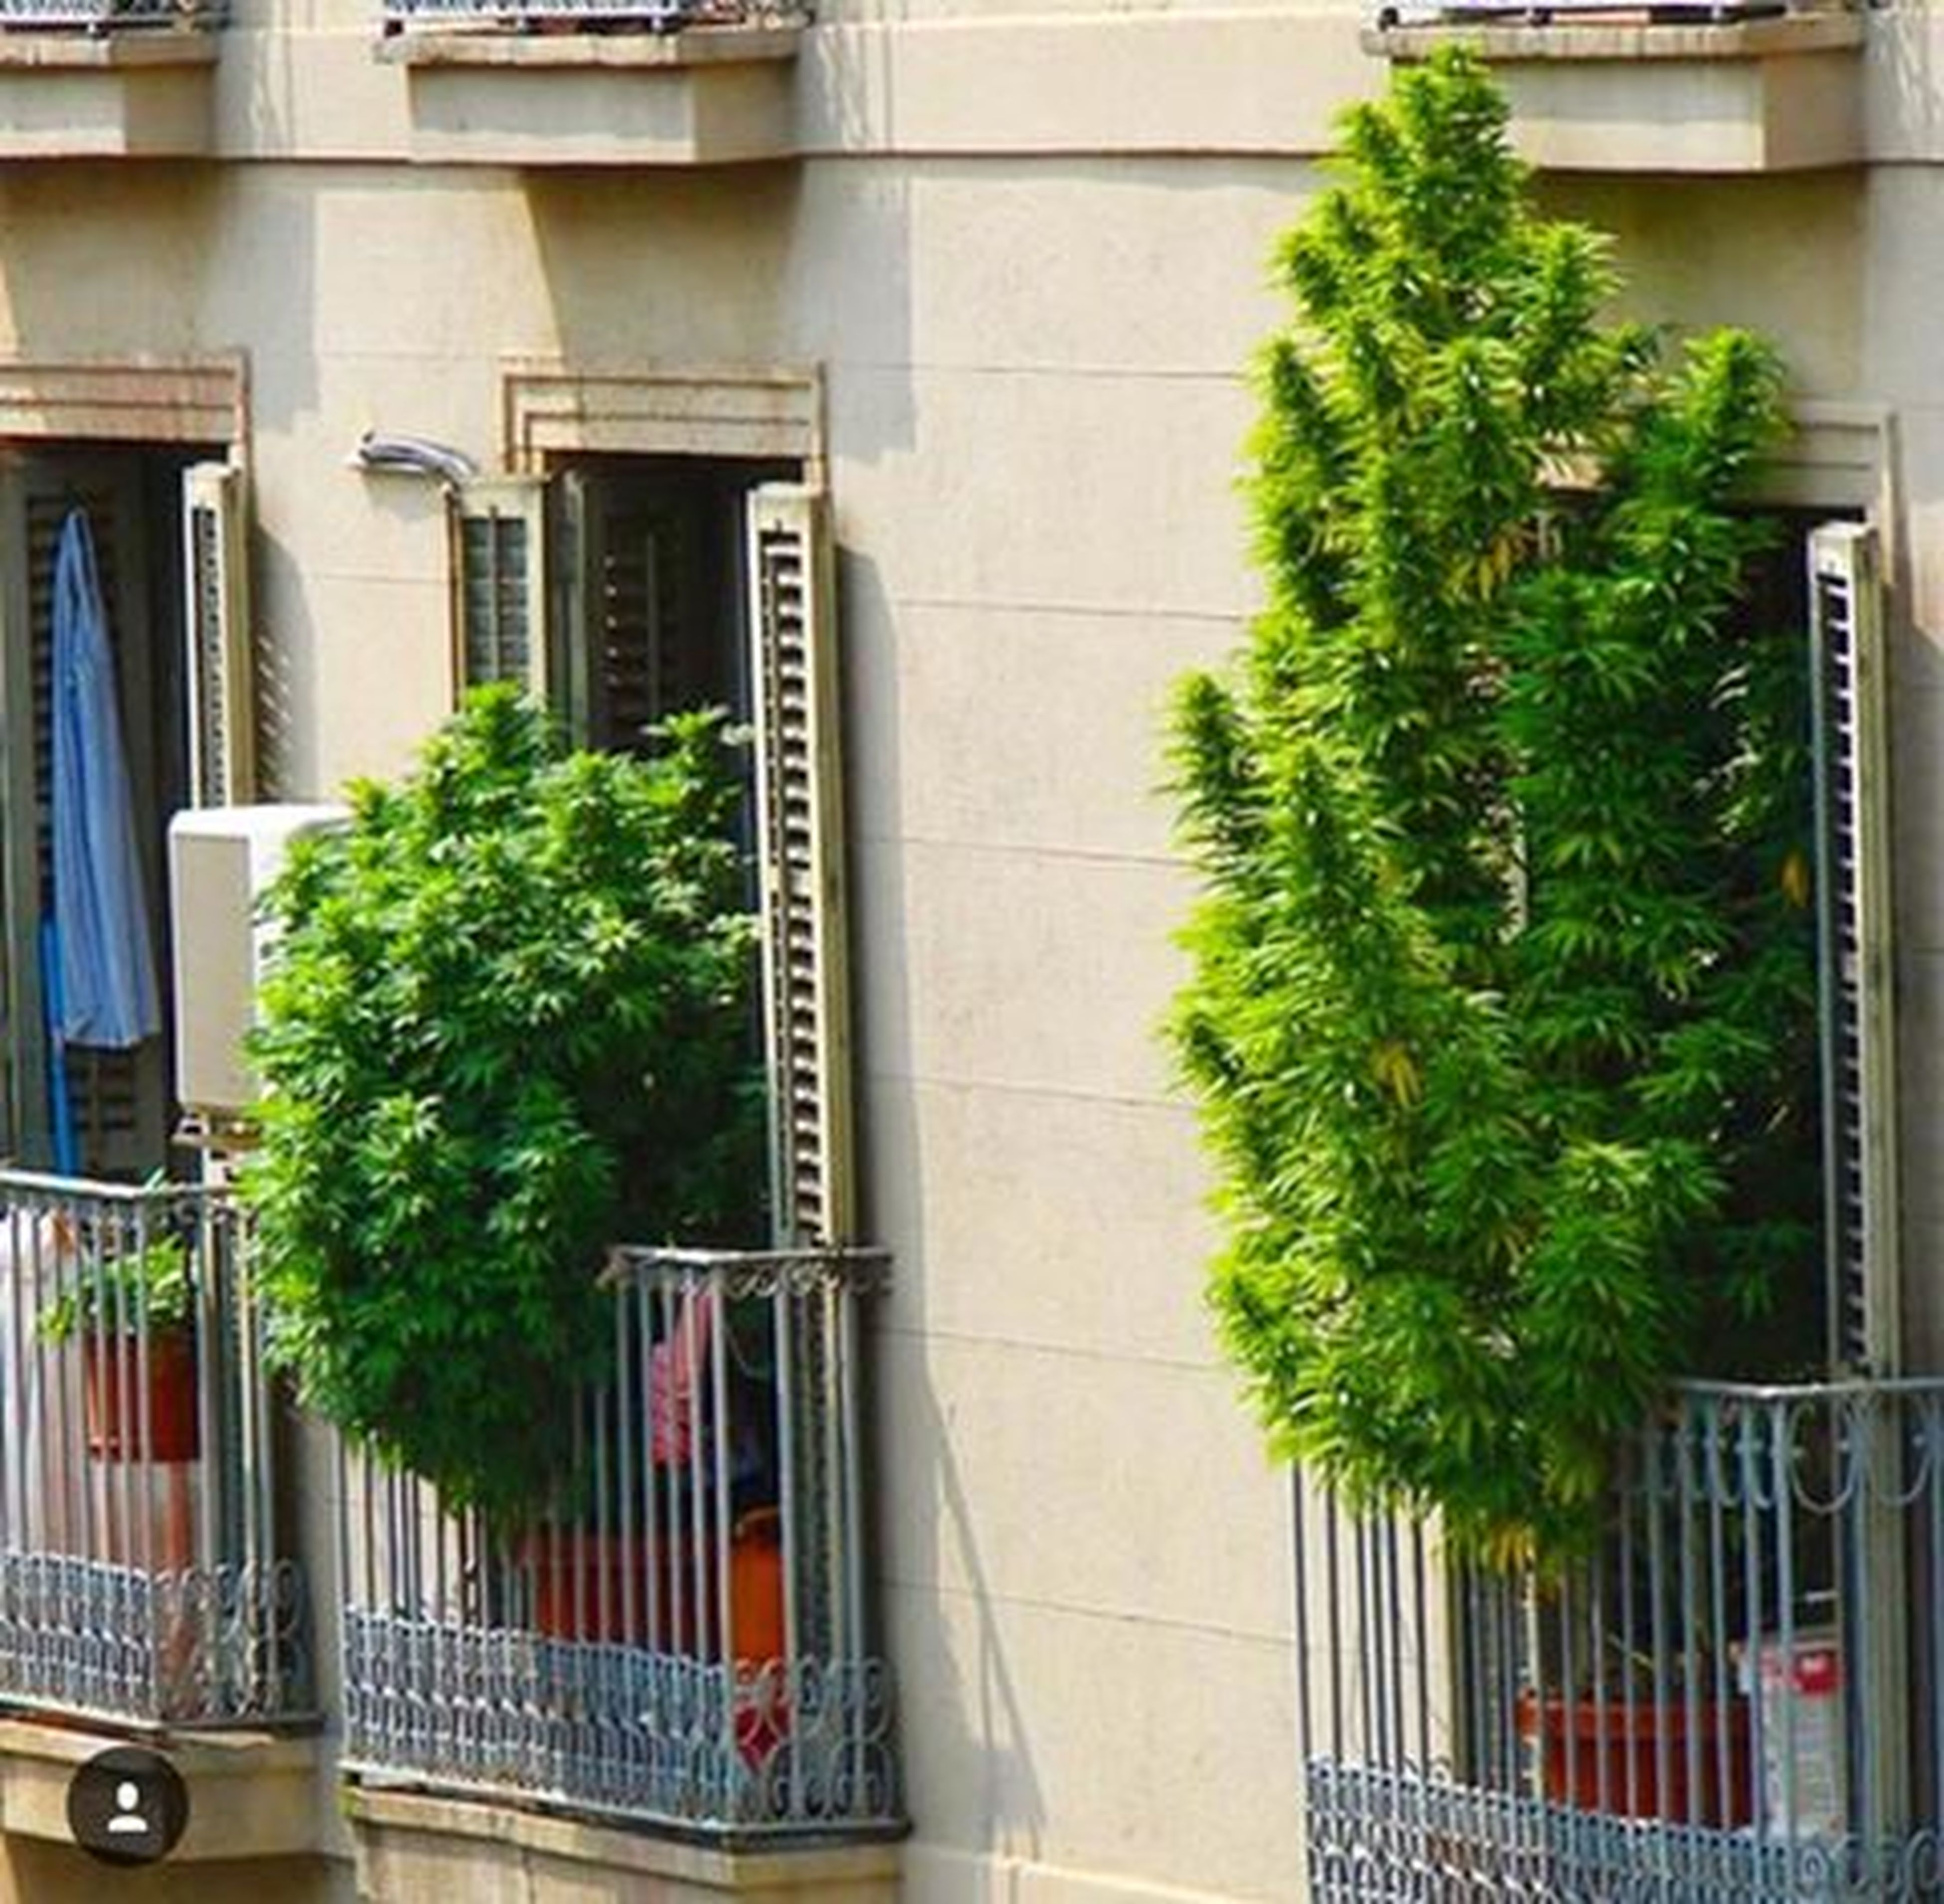 architecture, built structure, building exterior, potted plant, growth, plant, tree, window, balcony, day, green color, outdoors, growing